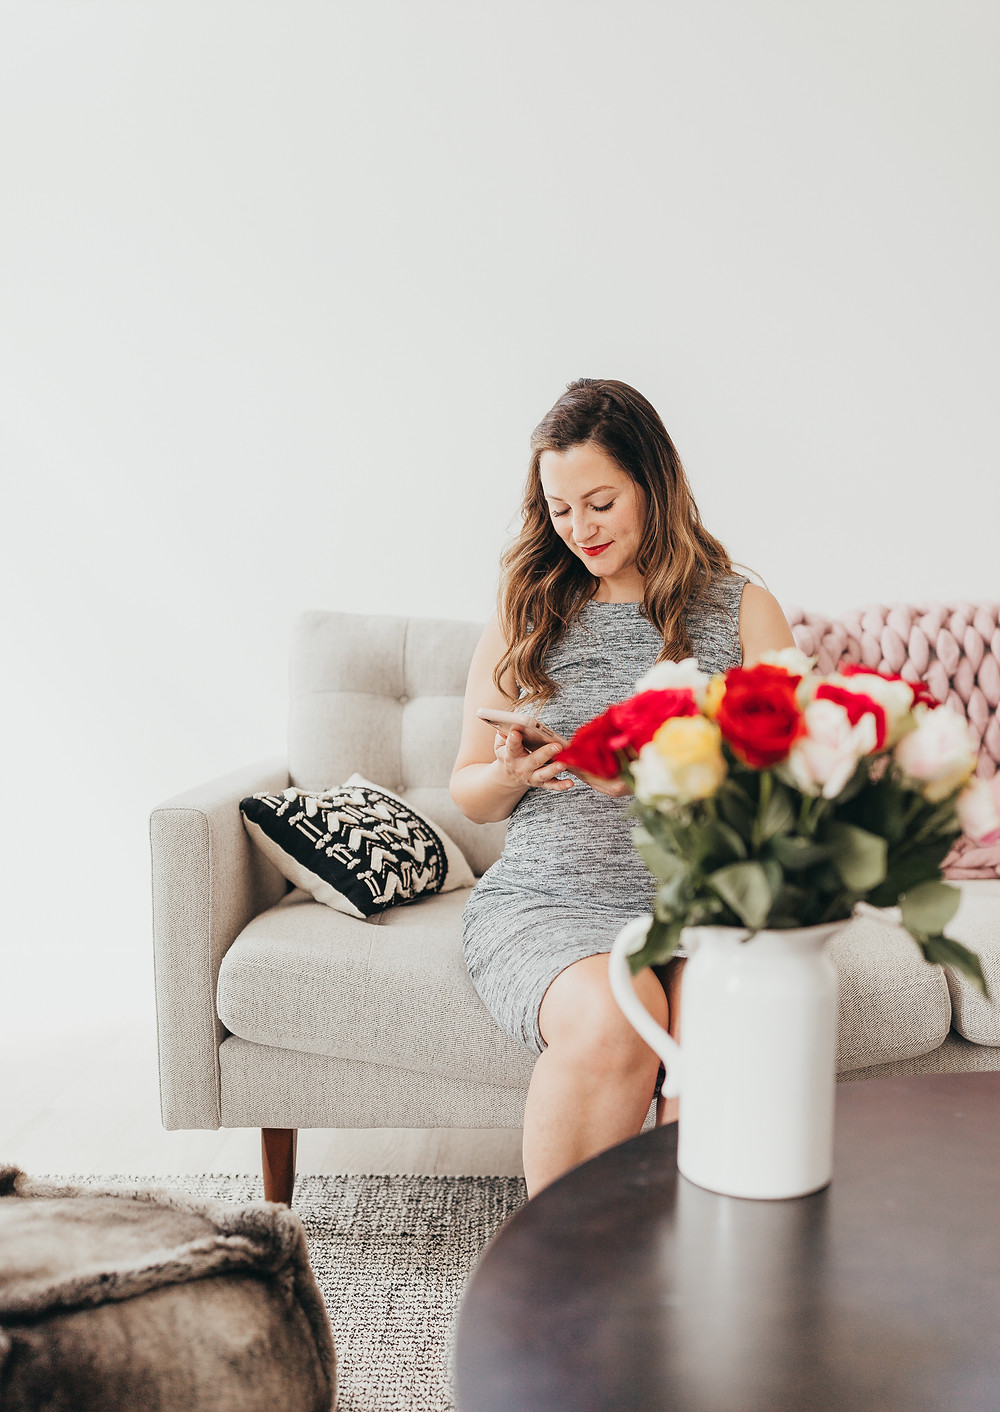 A woman sitting on the couch looking at her phone with a bouquet of flowers on the table in front of her.